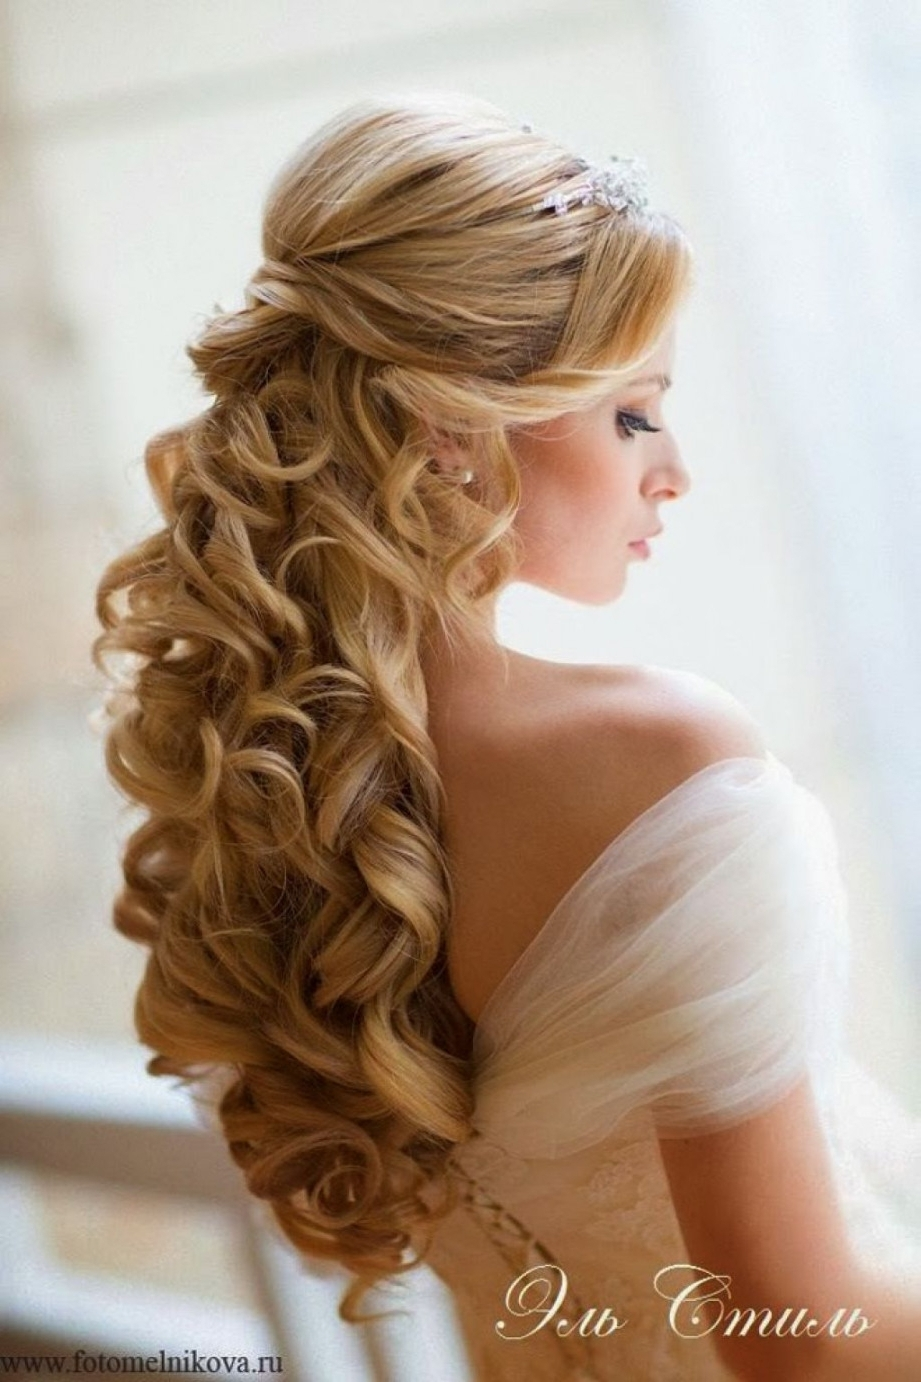 Half Updo Half Up Half Down Hairstyles For Long Hair How Does She With Regard To Updo Half Up Half Down Hairstyles (View 3 of 15)